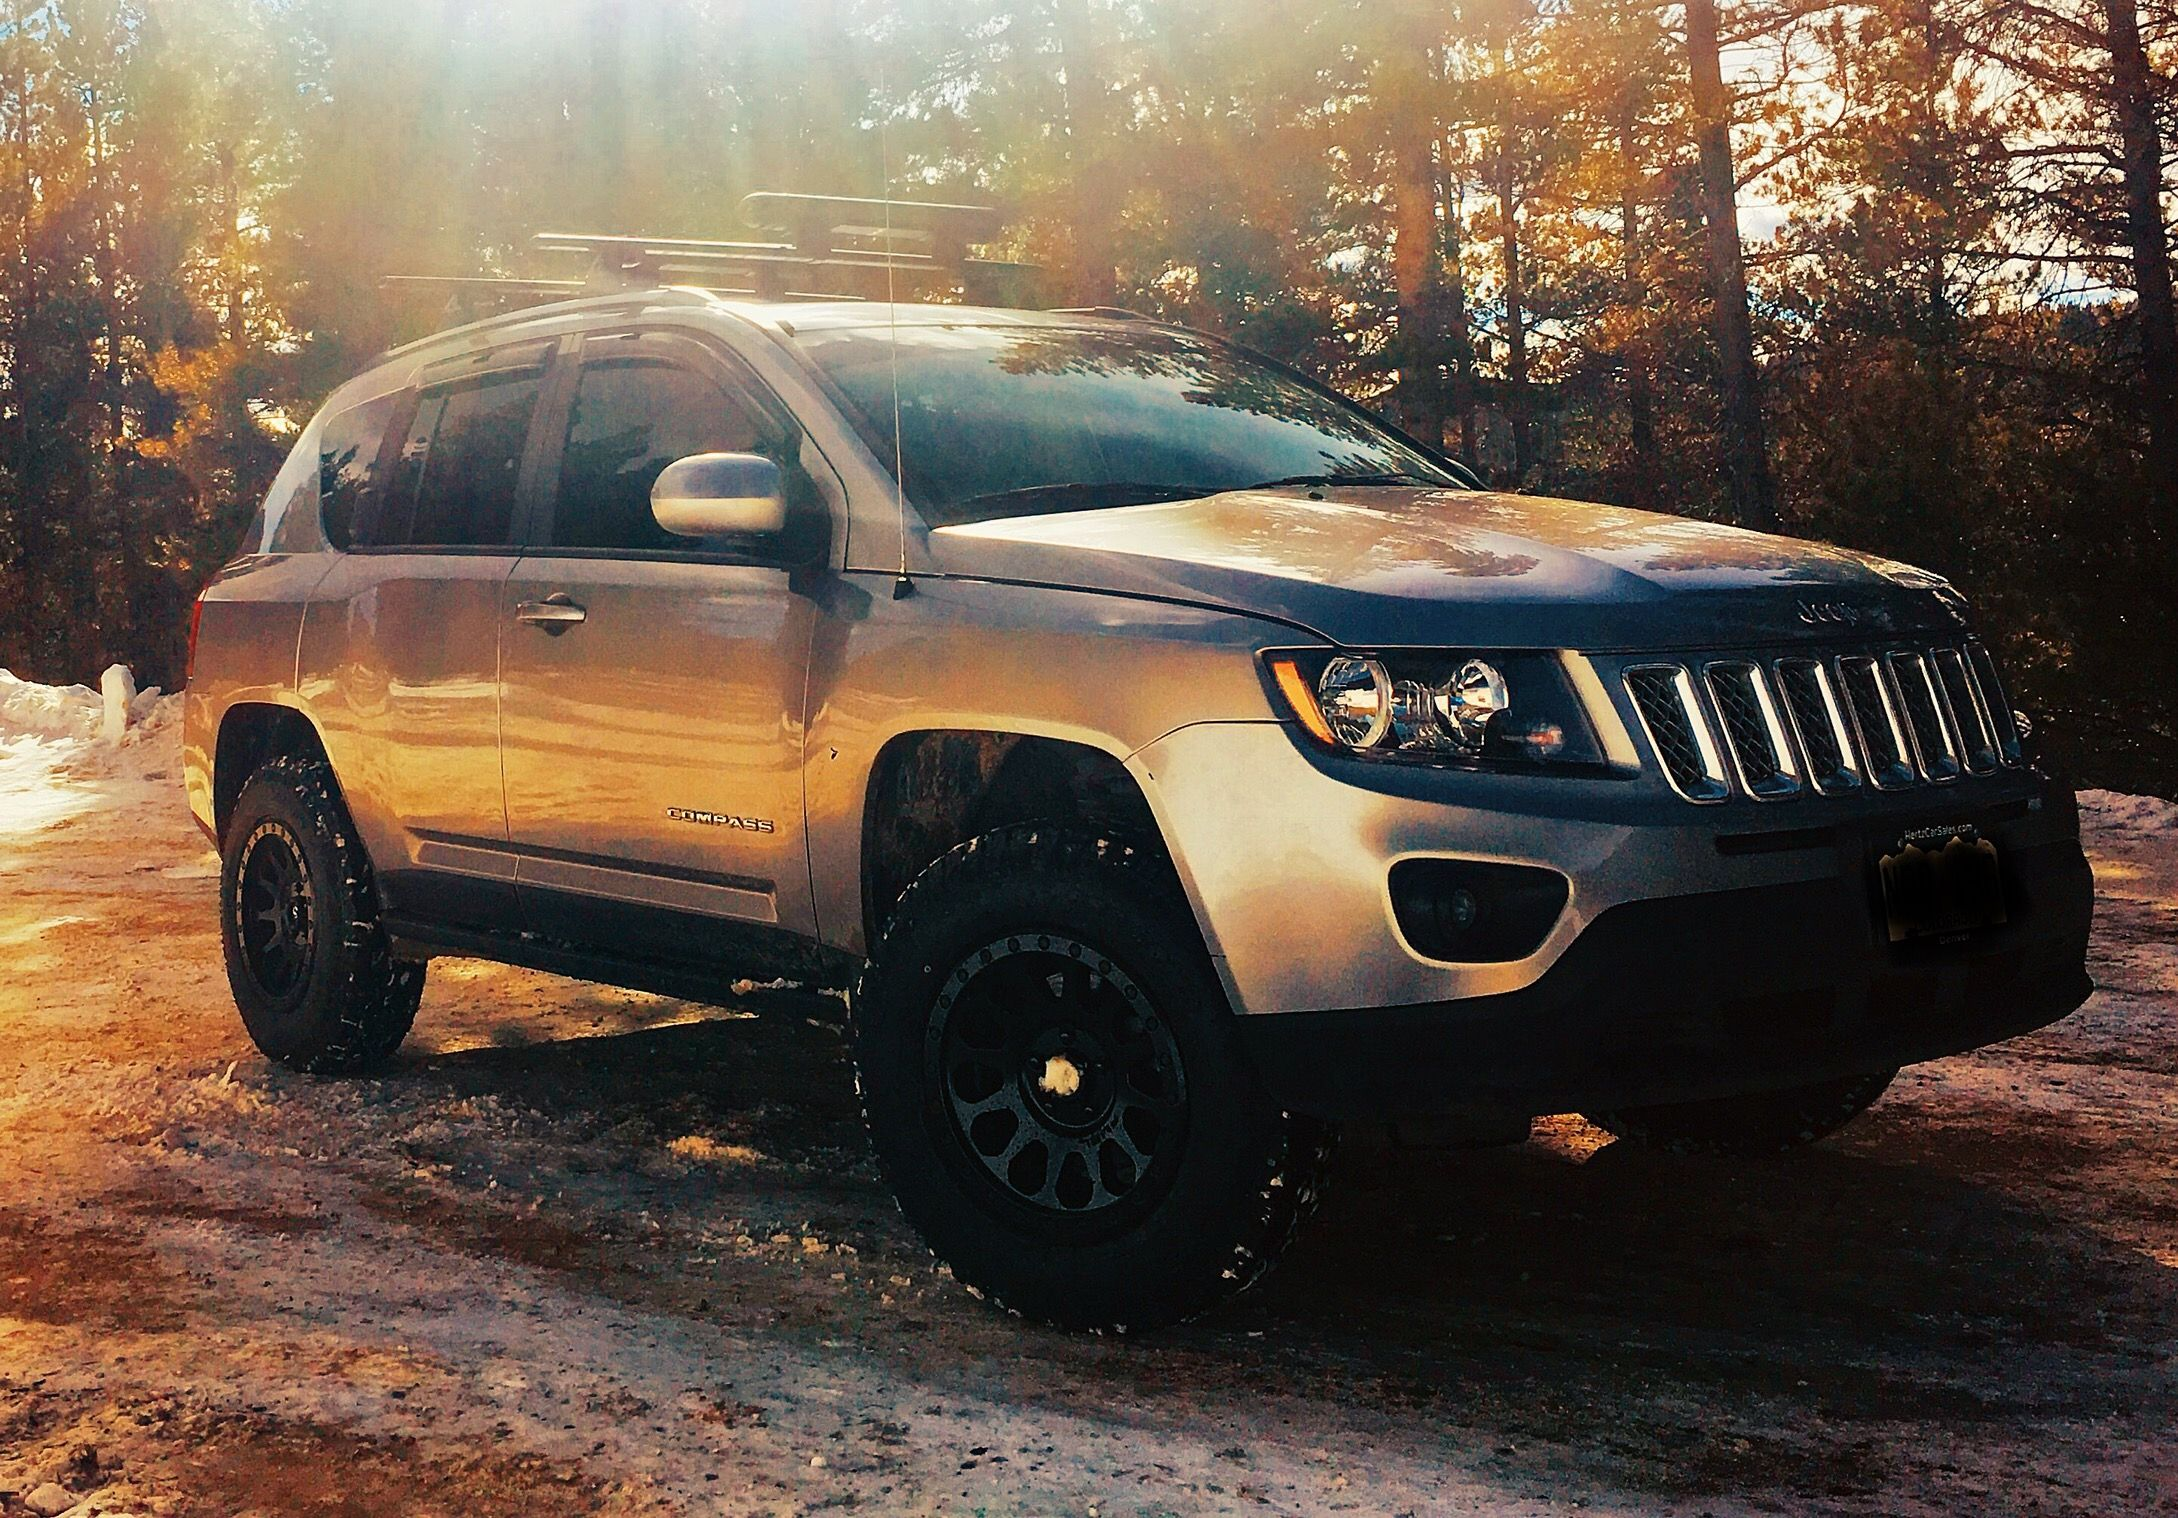 Jays Lifted Jeep Compass Buick Envision Jeep Compass